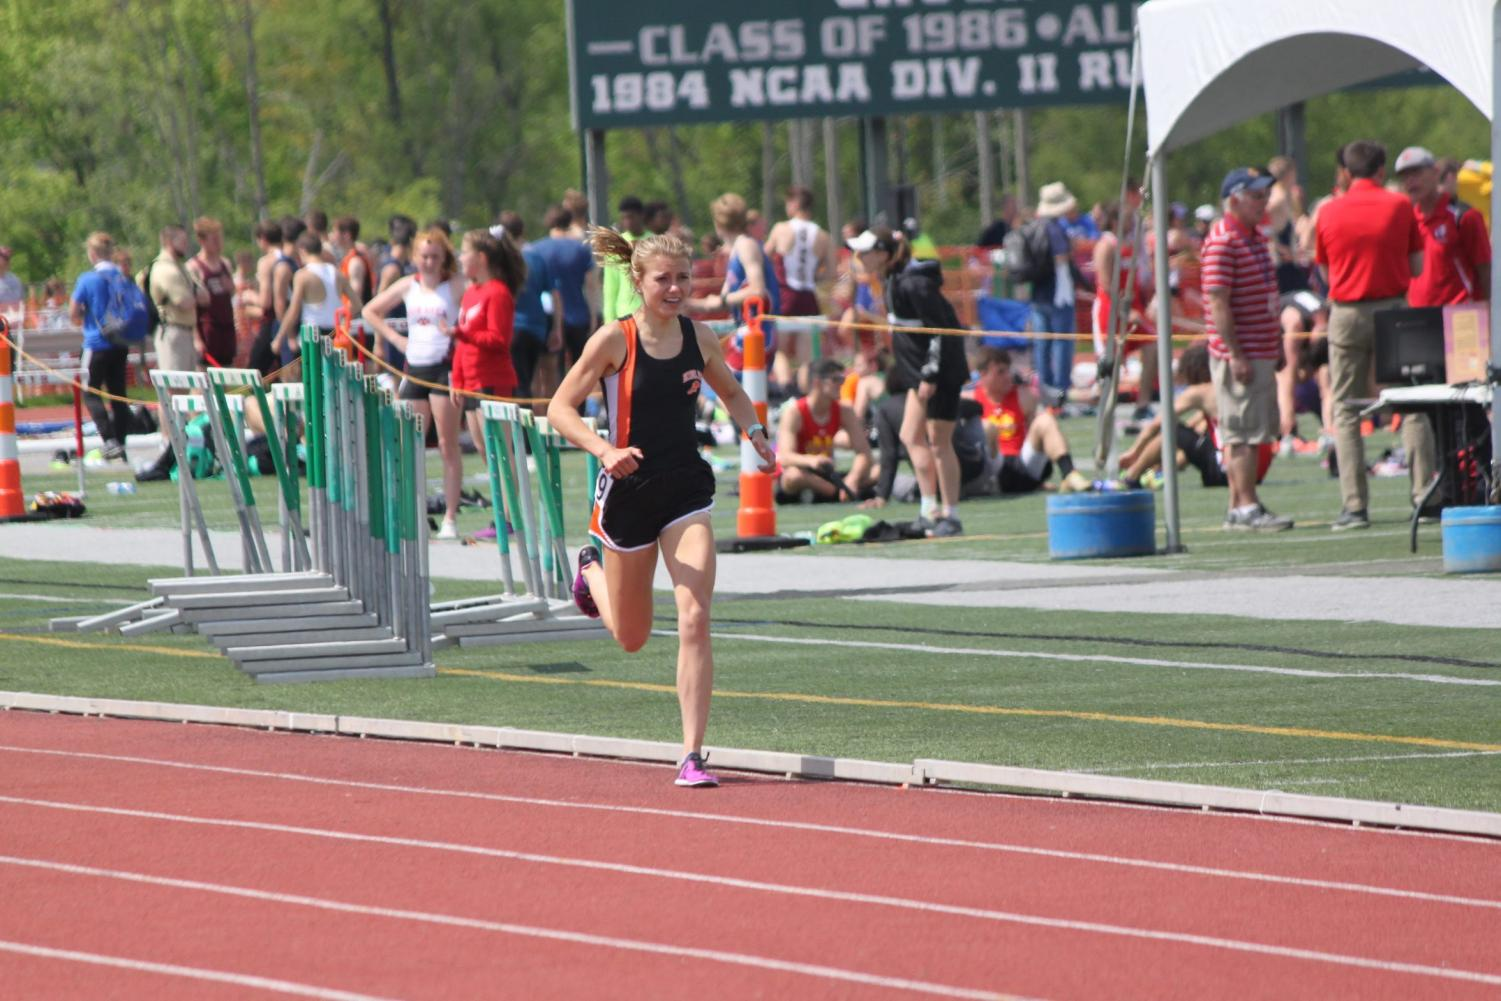 Emily Carter eyes the finish line in the 1600m run of the WPIAL Championships on May 16. Carter won the race in a time of 4:59.